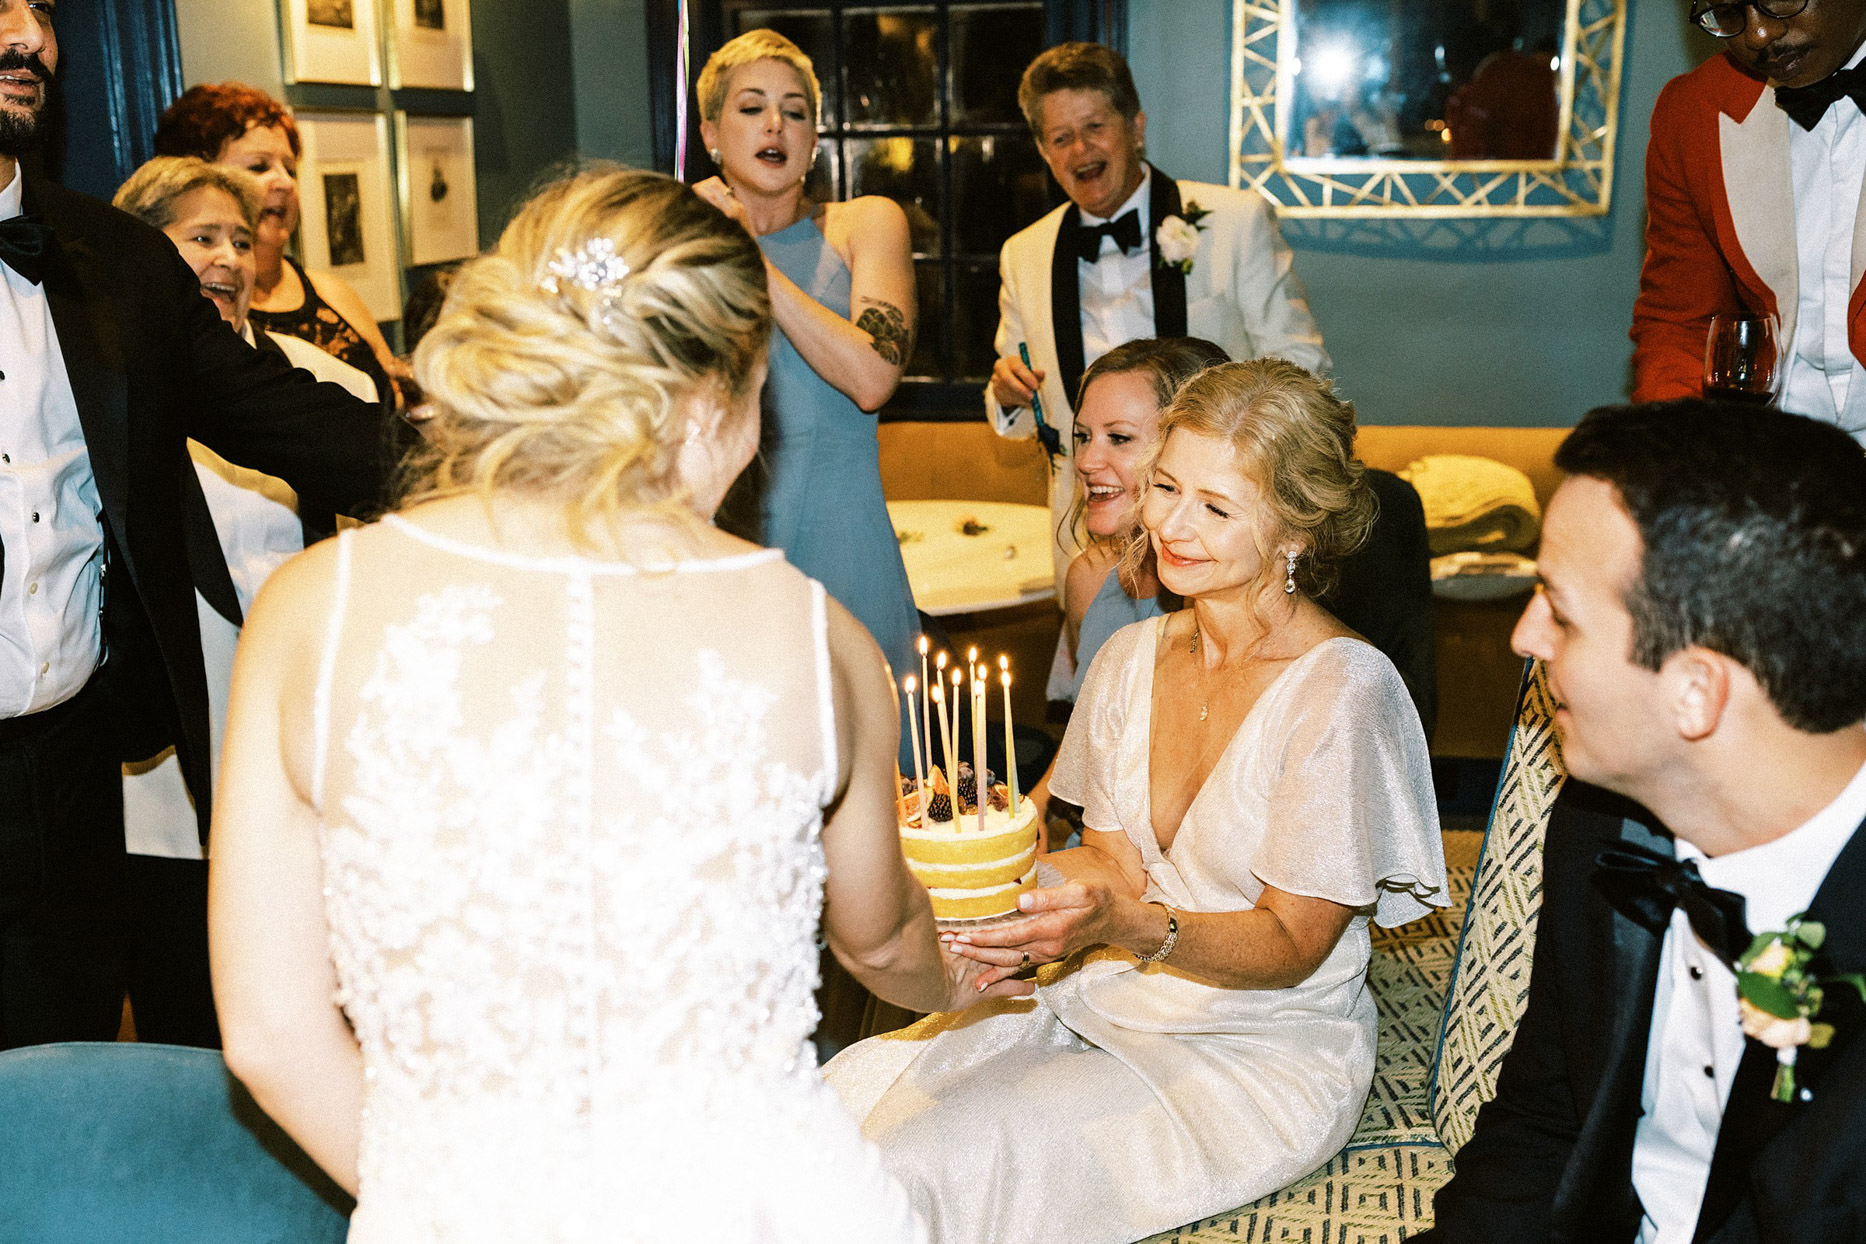 guests smiling and singing with lit birthday cake